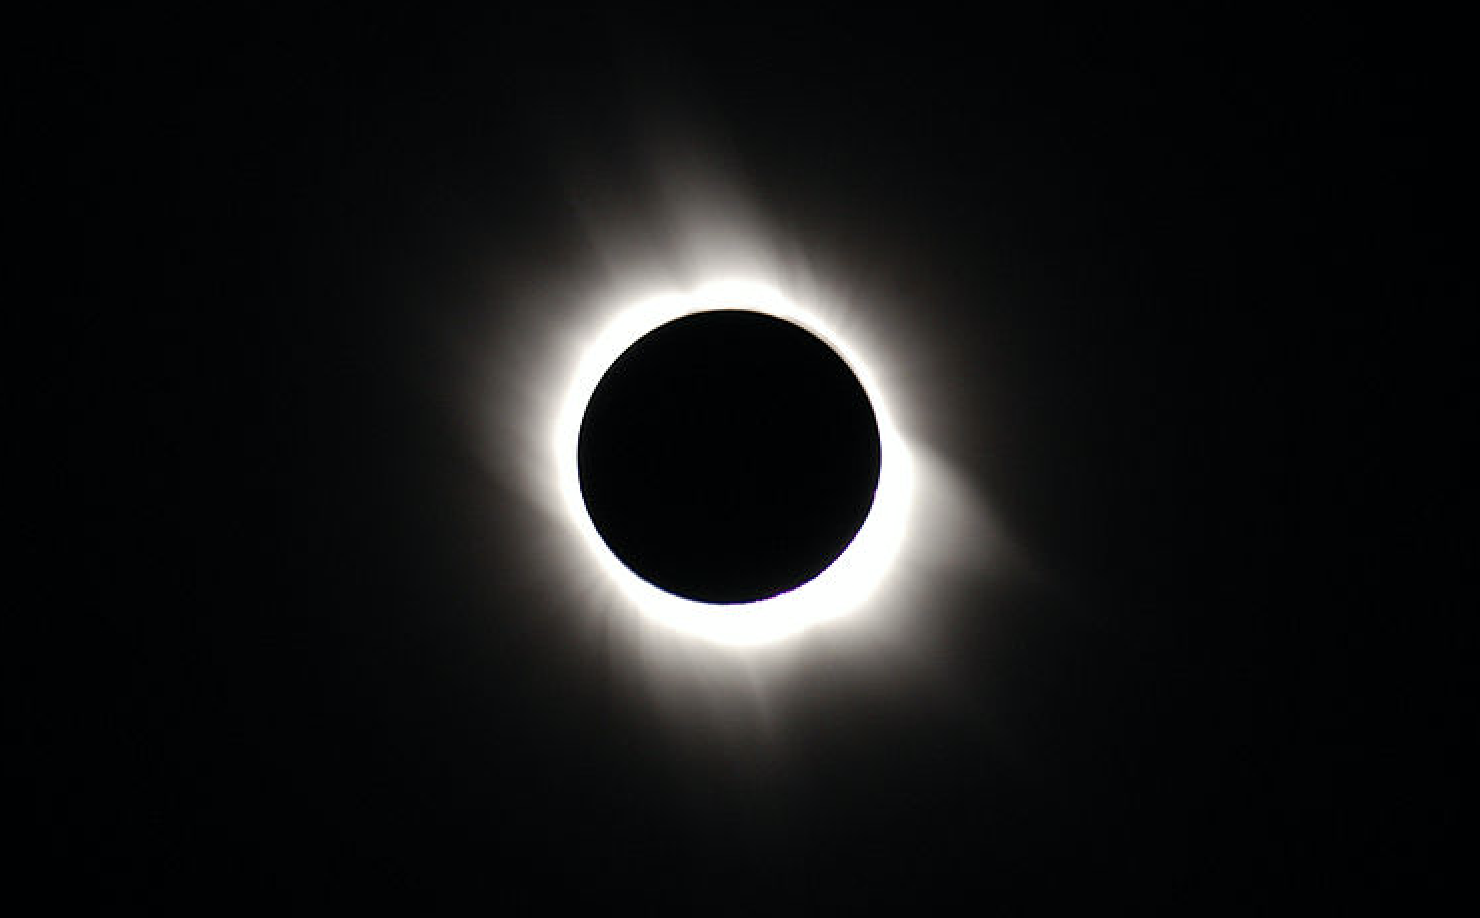 Eclipse PNG Images.